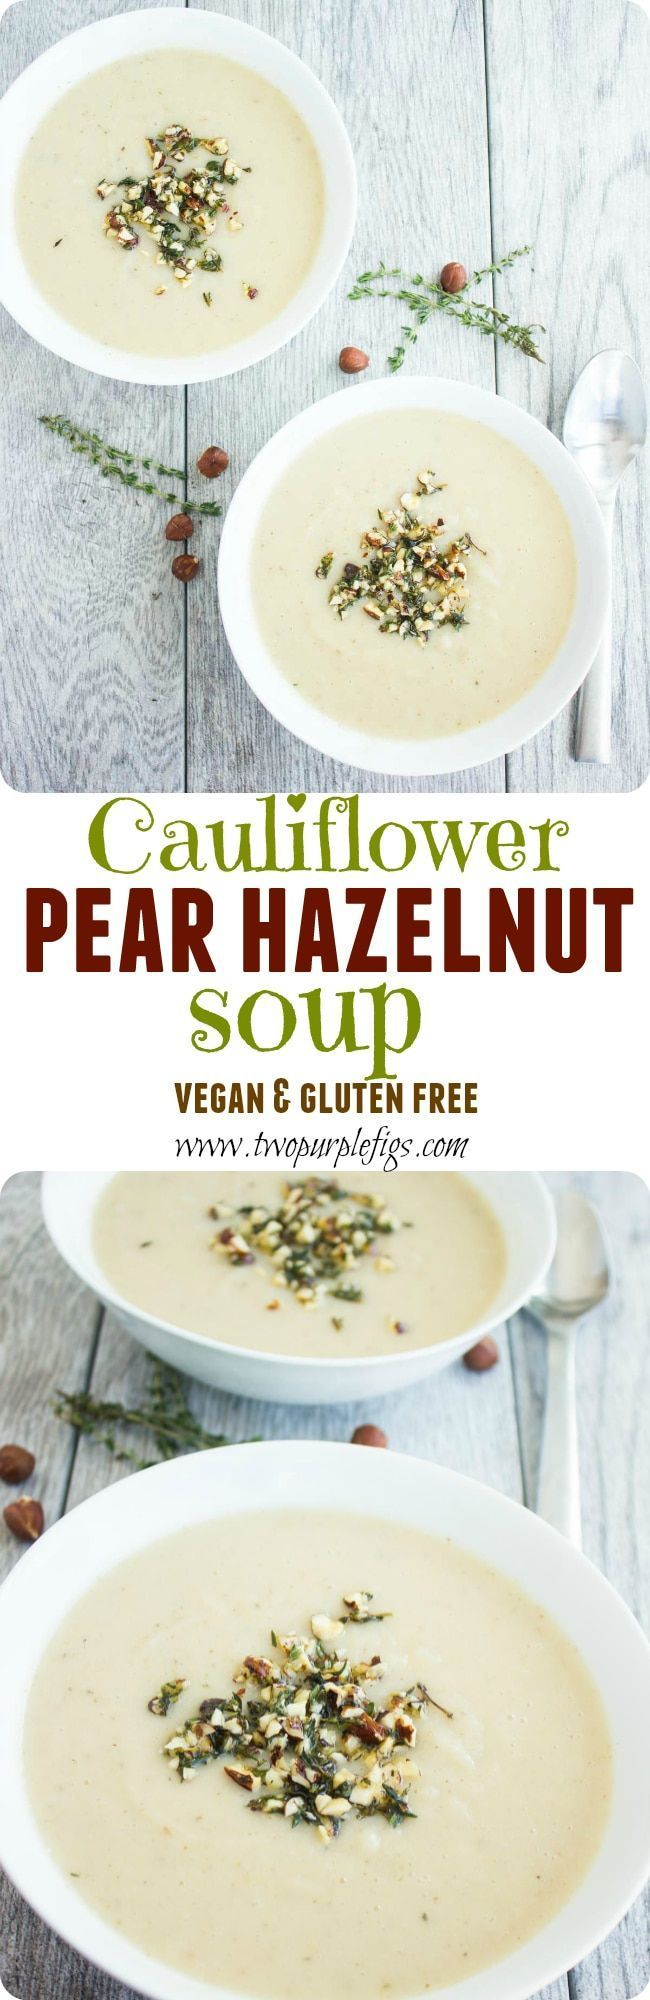 Cauliflower Hazelnut Pear Soup - smooth, rich, satisfying and the perfect comforting dish to cheer you up on a cold rainy day. Serve this creamy vegan soup with a crunchy Thyme & Hazelnut topping! The perfect starter for a fall-themed menu. |  via @twopurplefigs